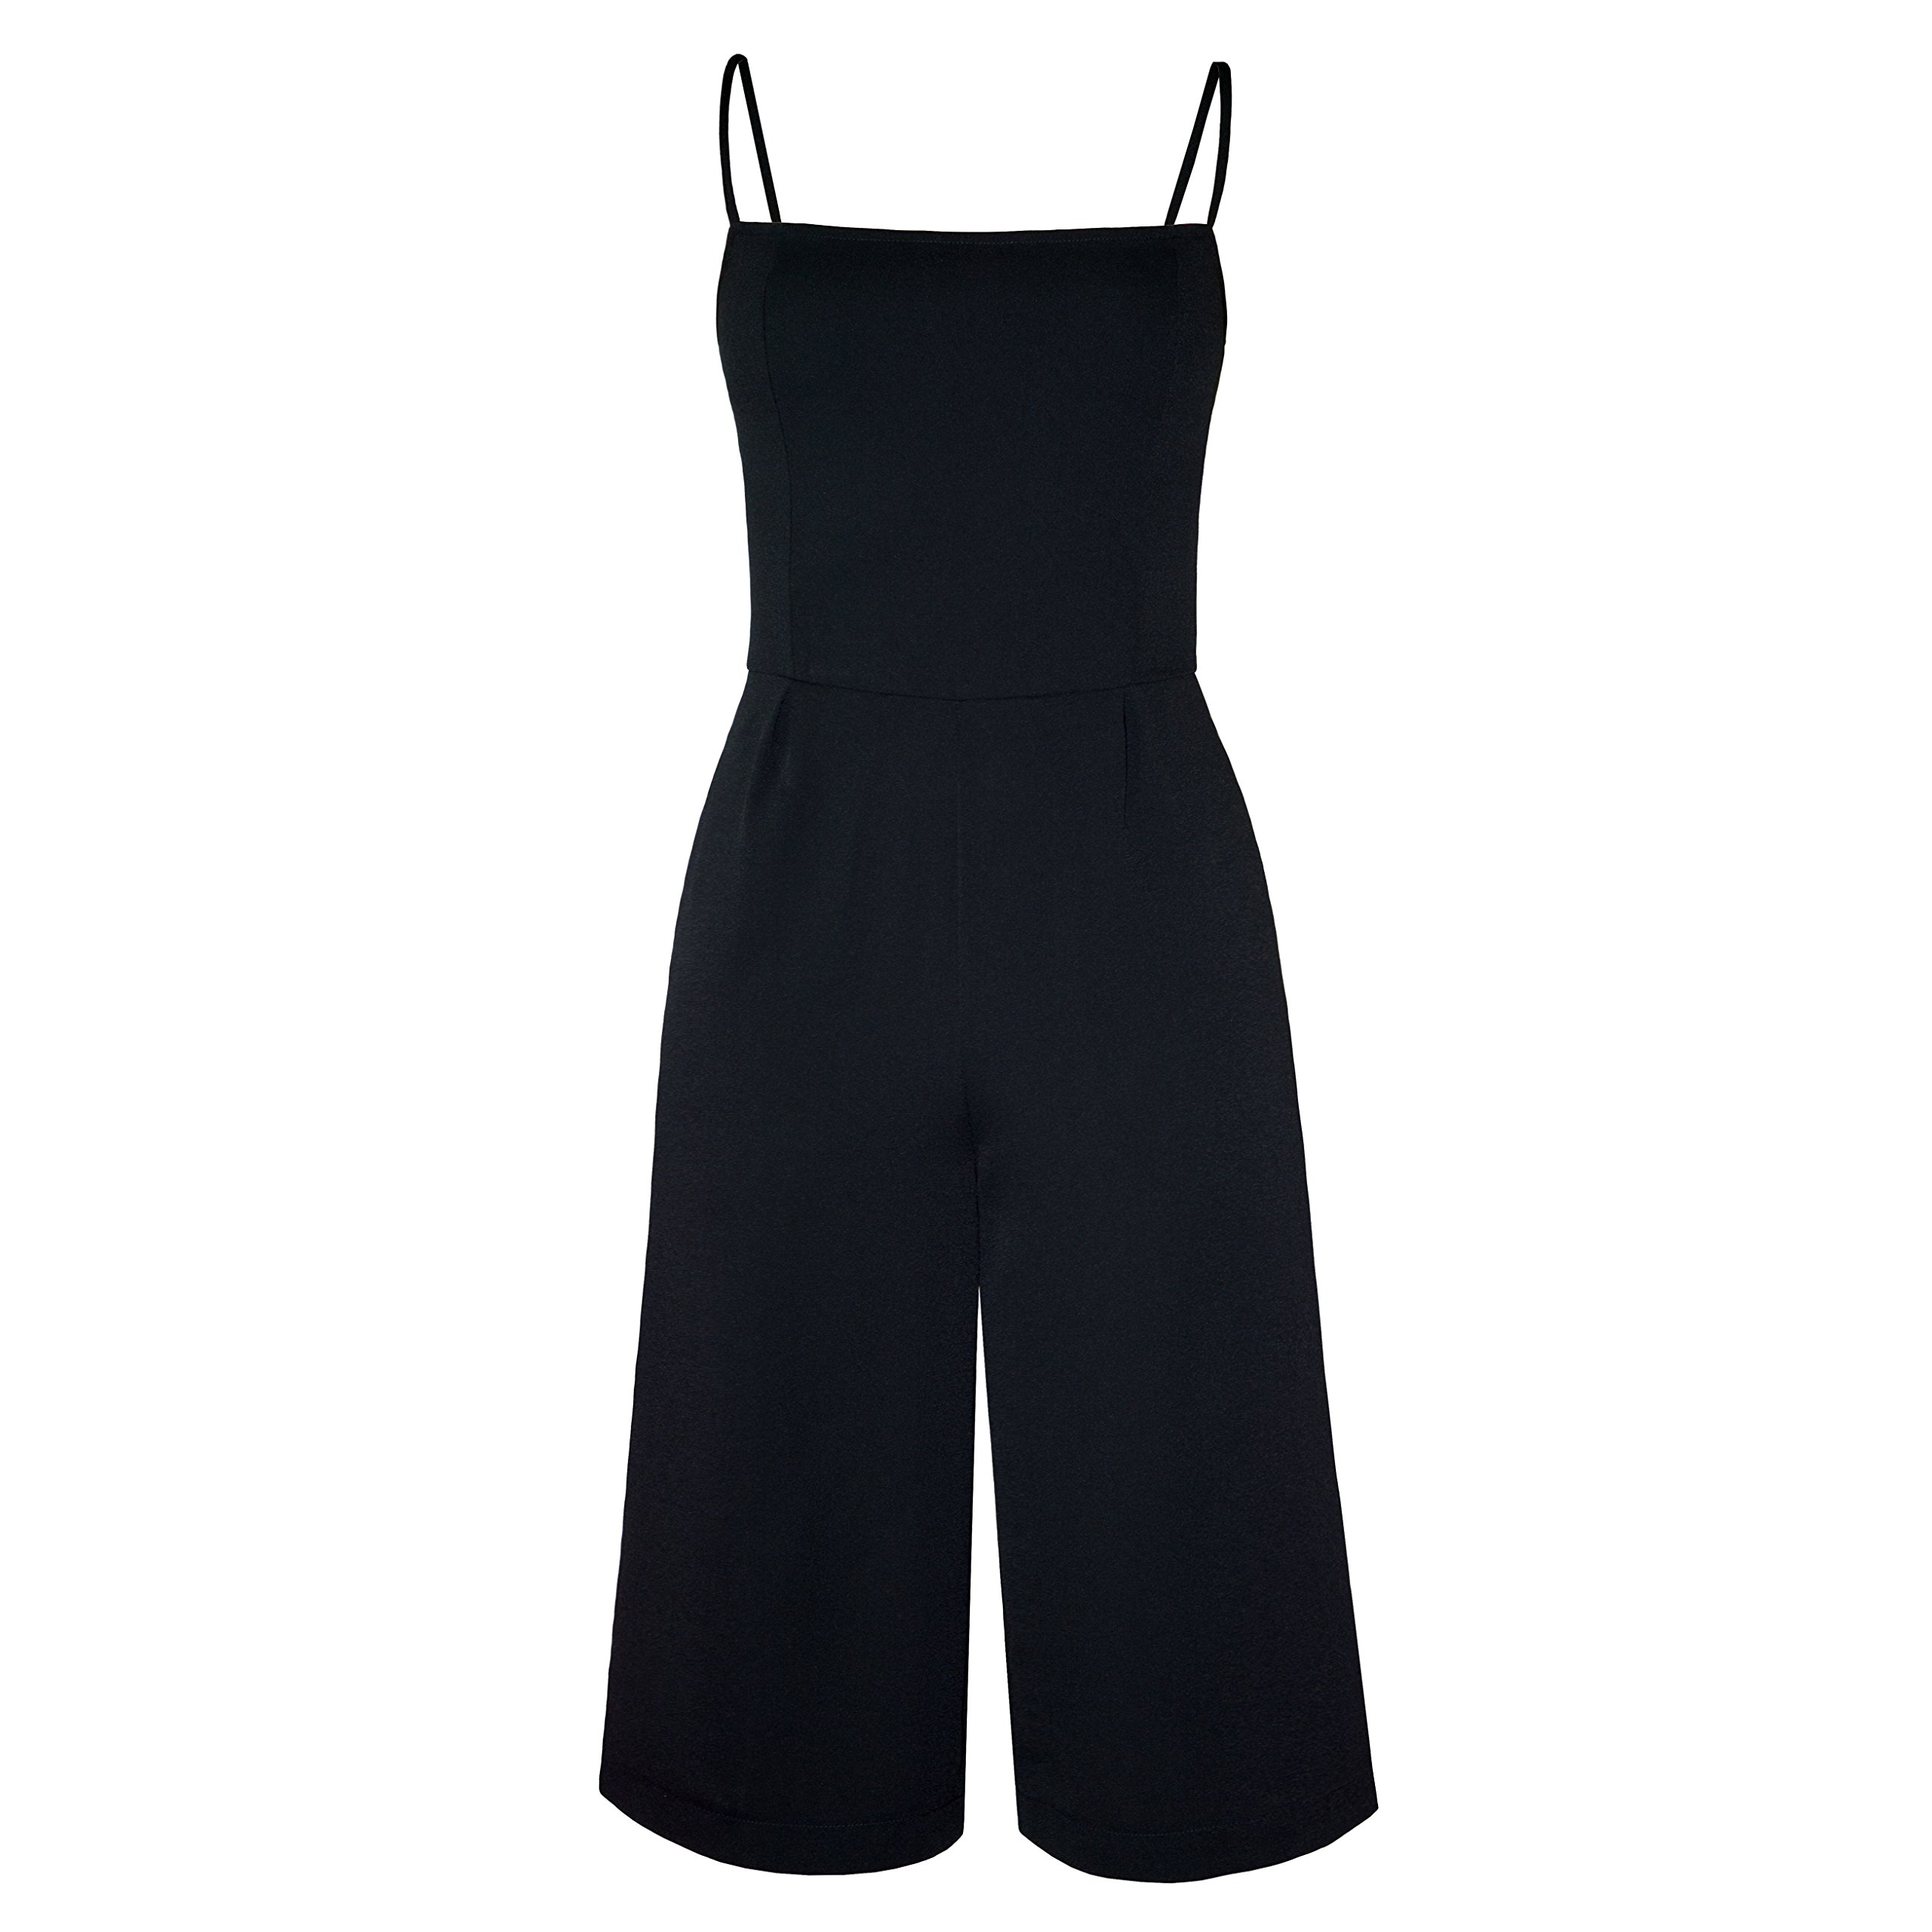 closet convention Black Culotte Jumpsuit with Wide Leg Palazzo Capri Pants, Side Pockets and Fitted top (Medium)